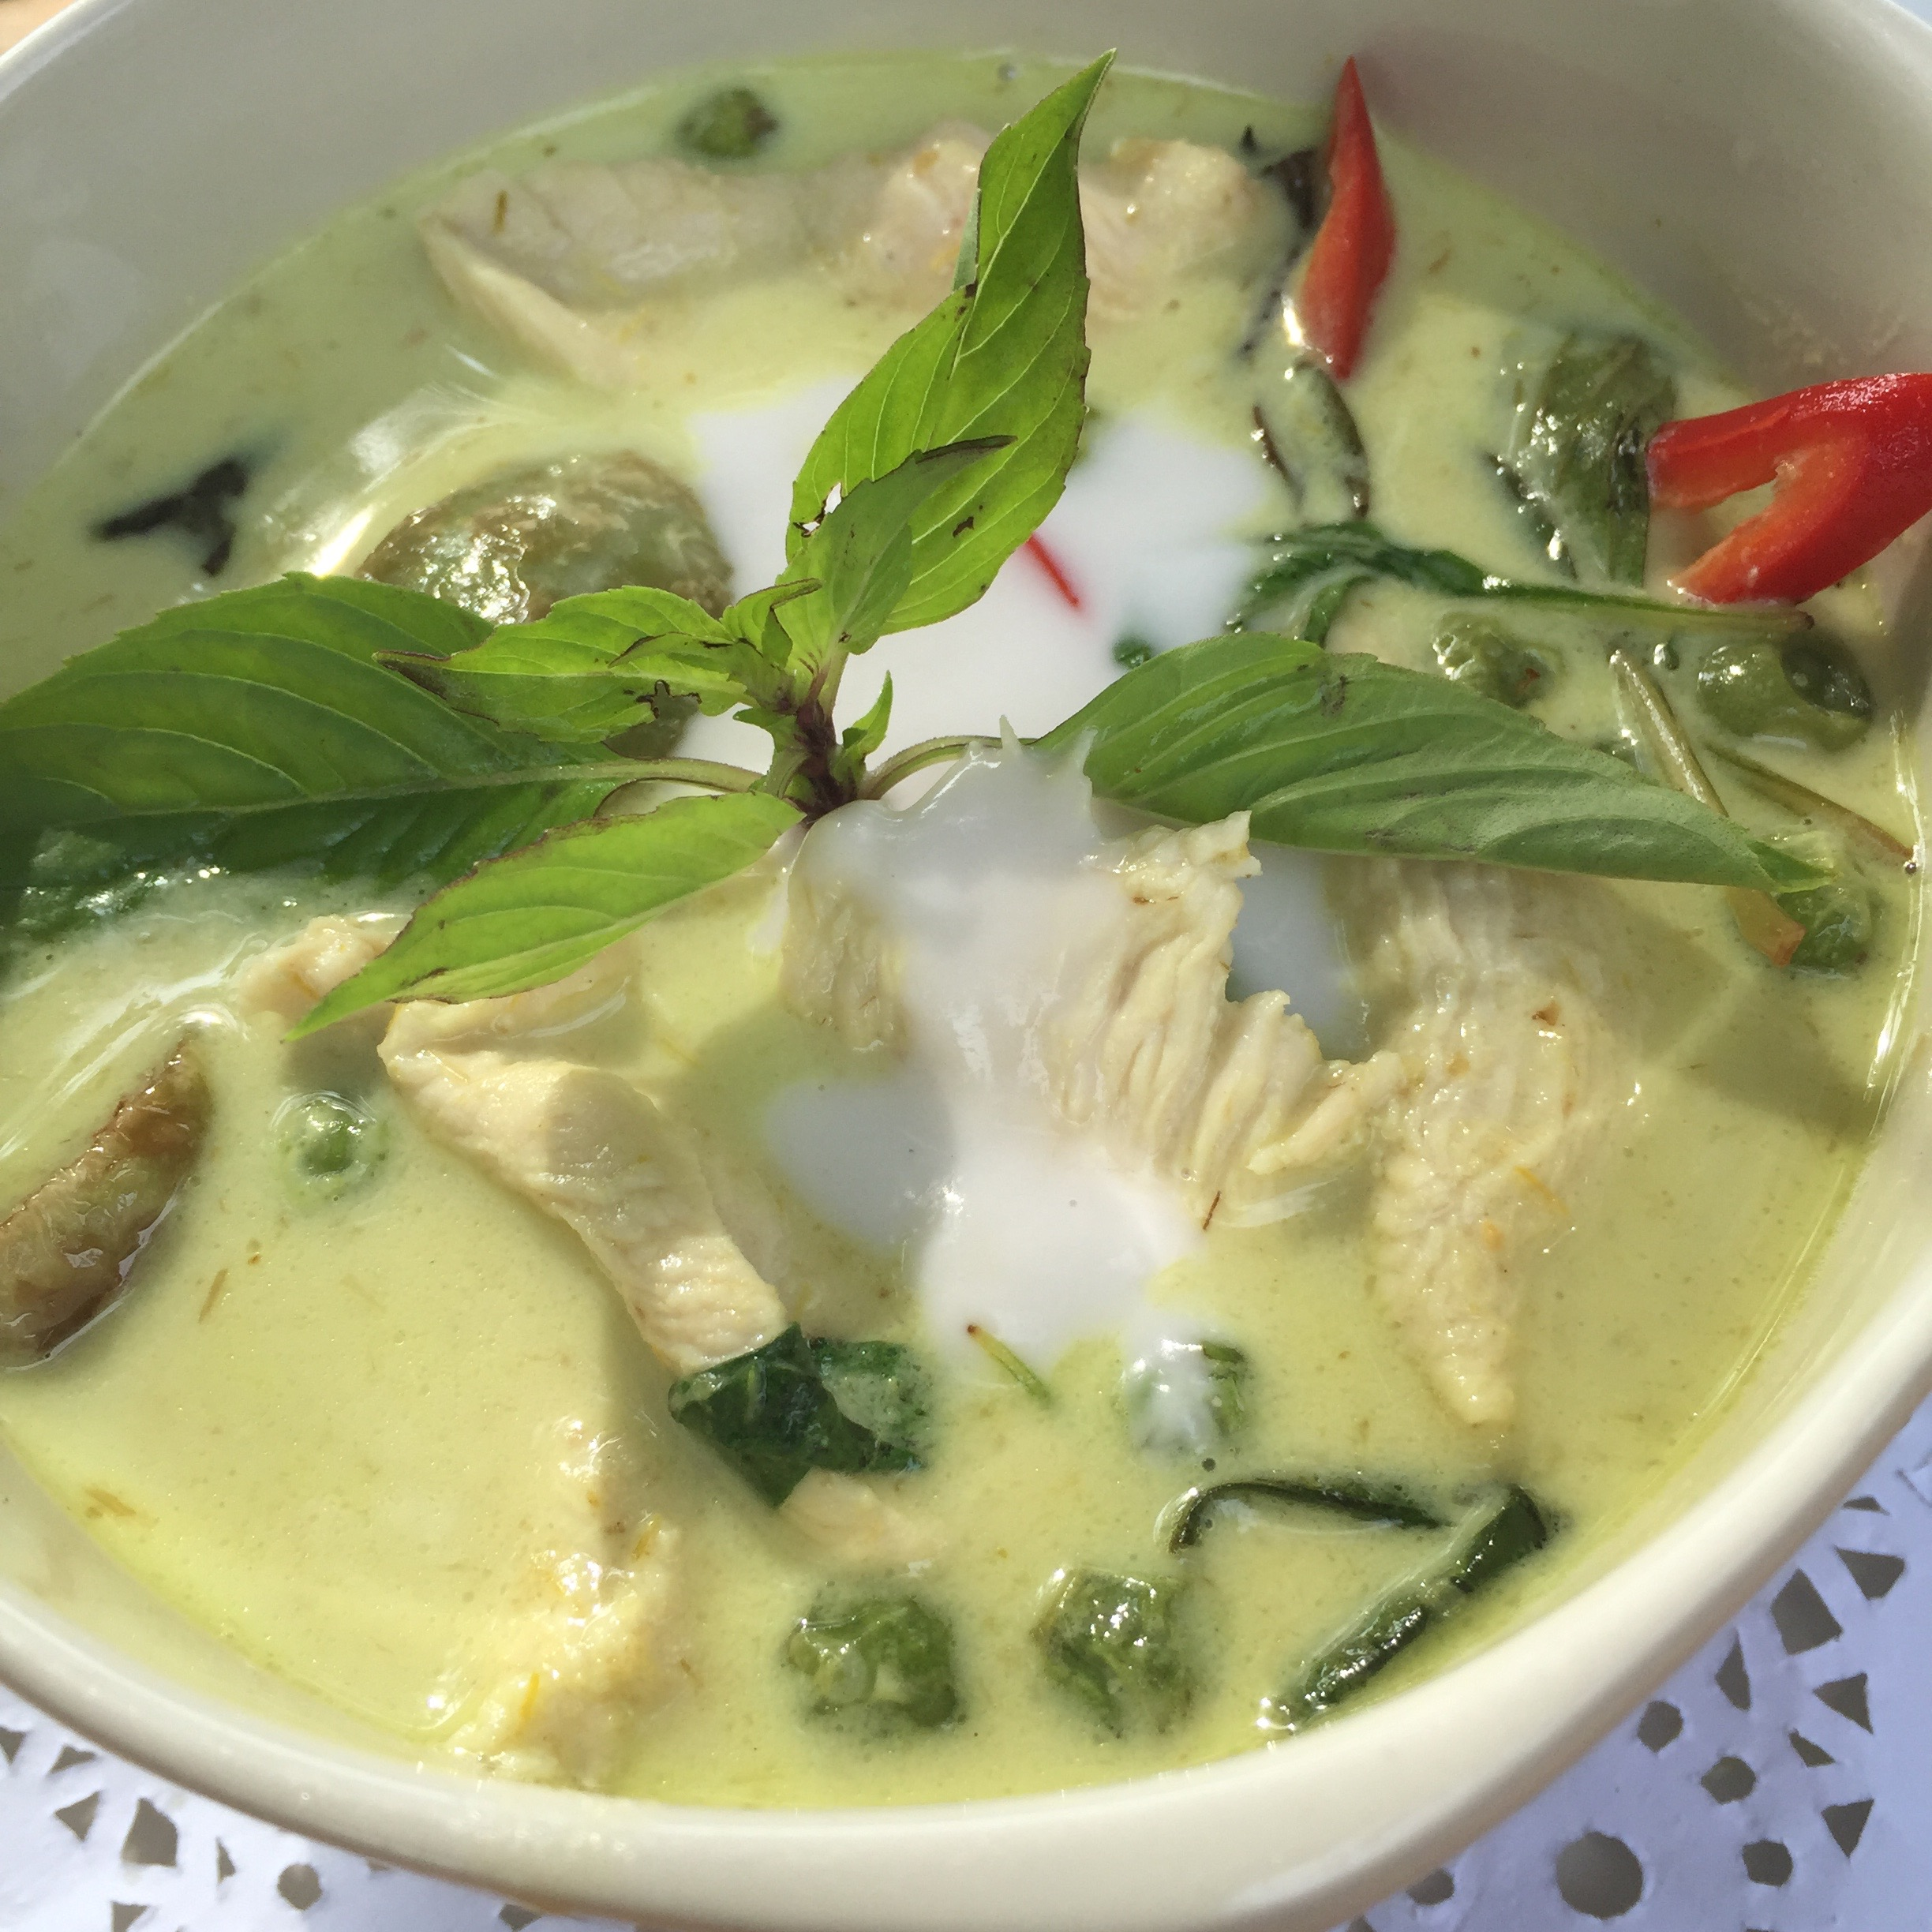 Another famous Thai dish: Chicken Green Curry